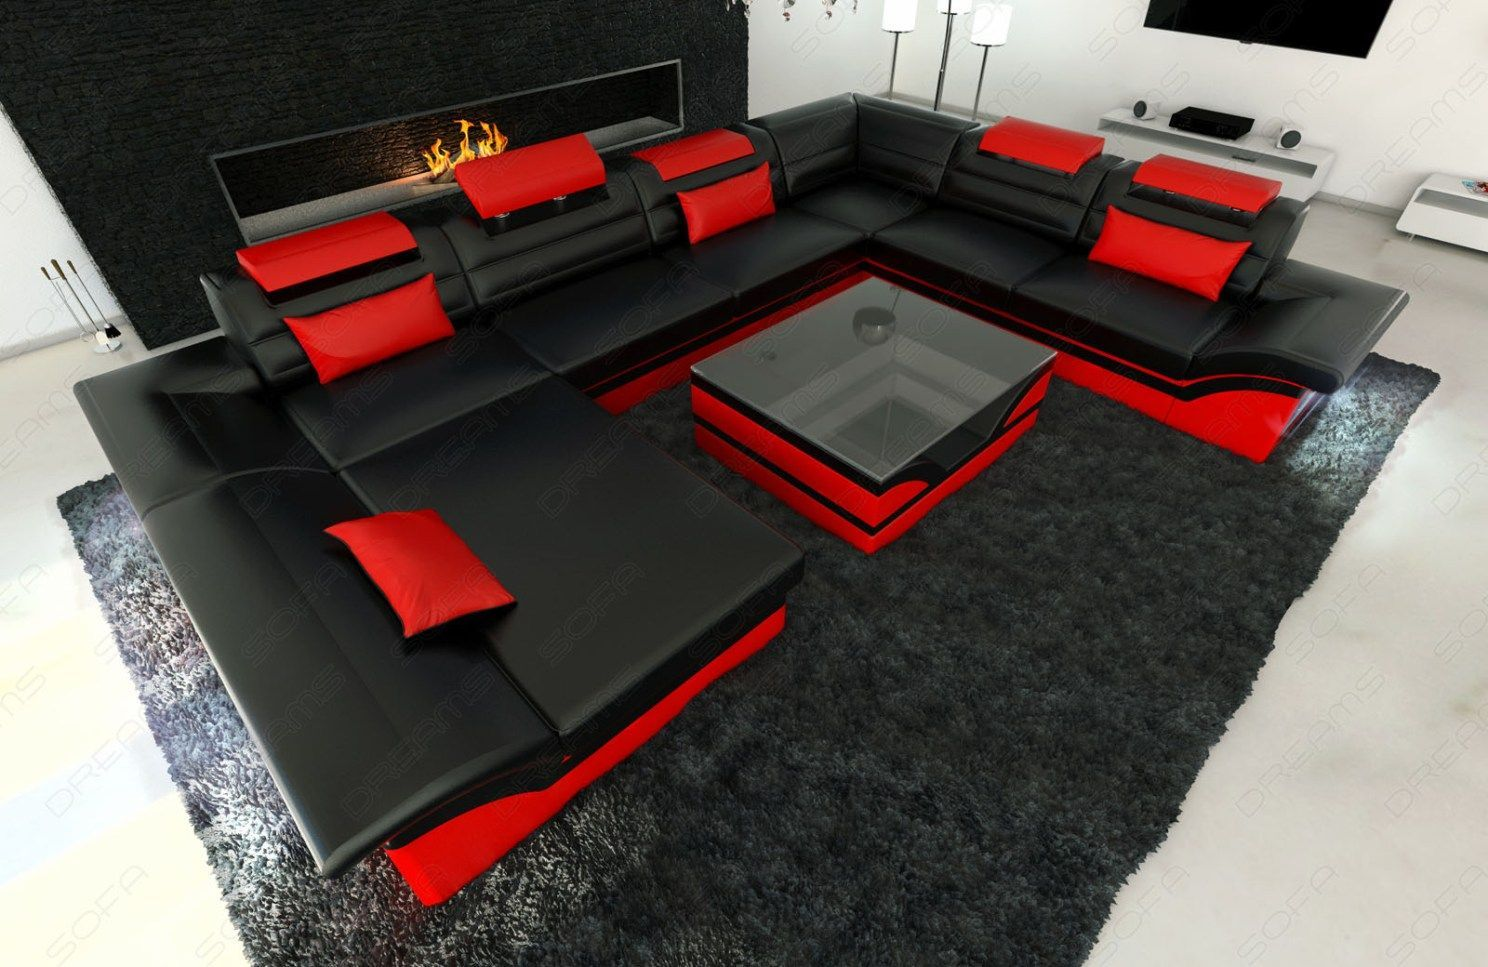 2017 Red and Black Leather Sofas; A striking and luxurious look ...